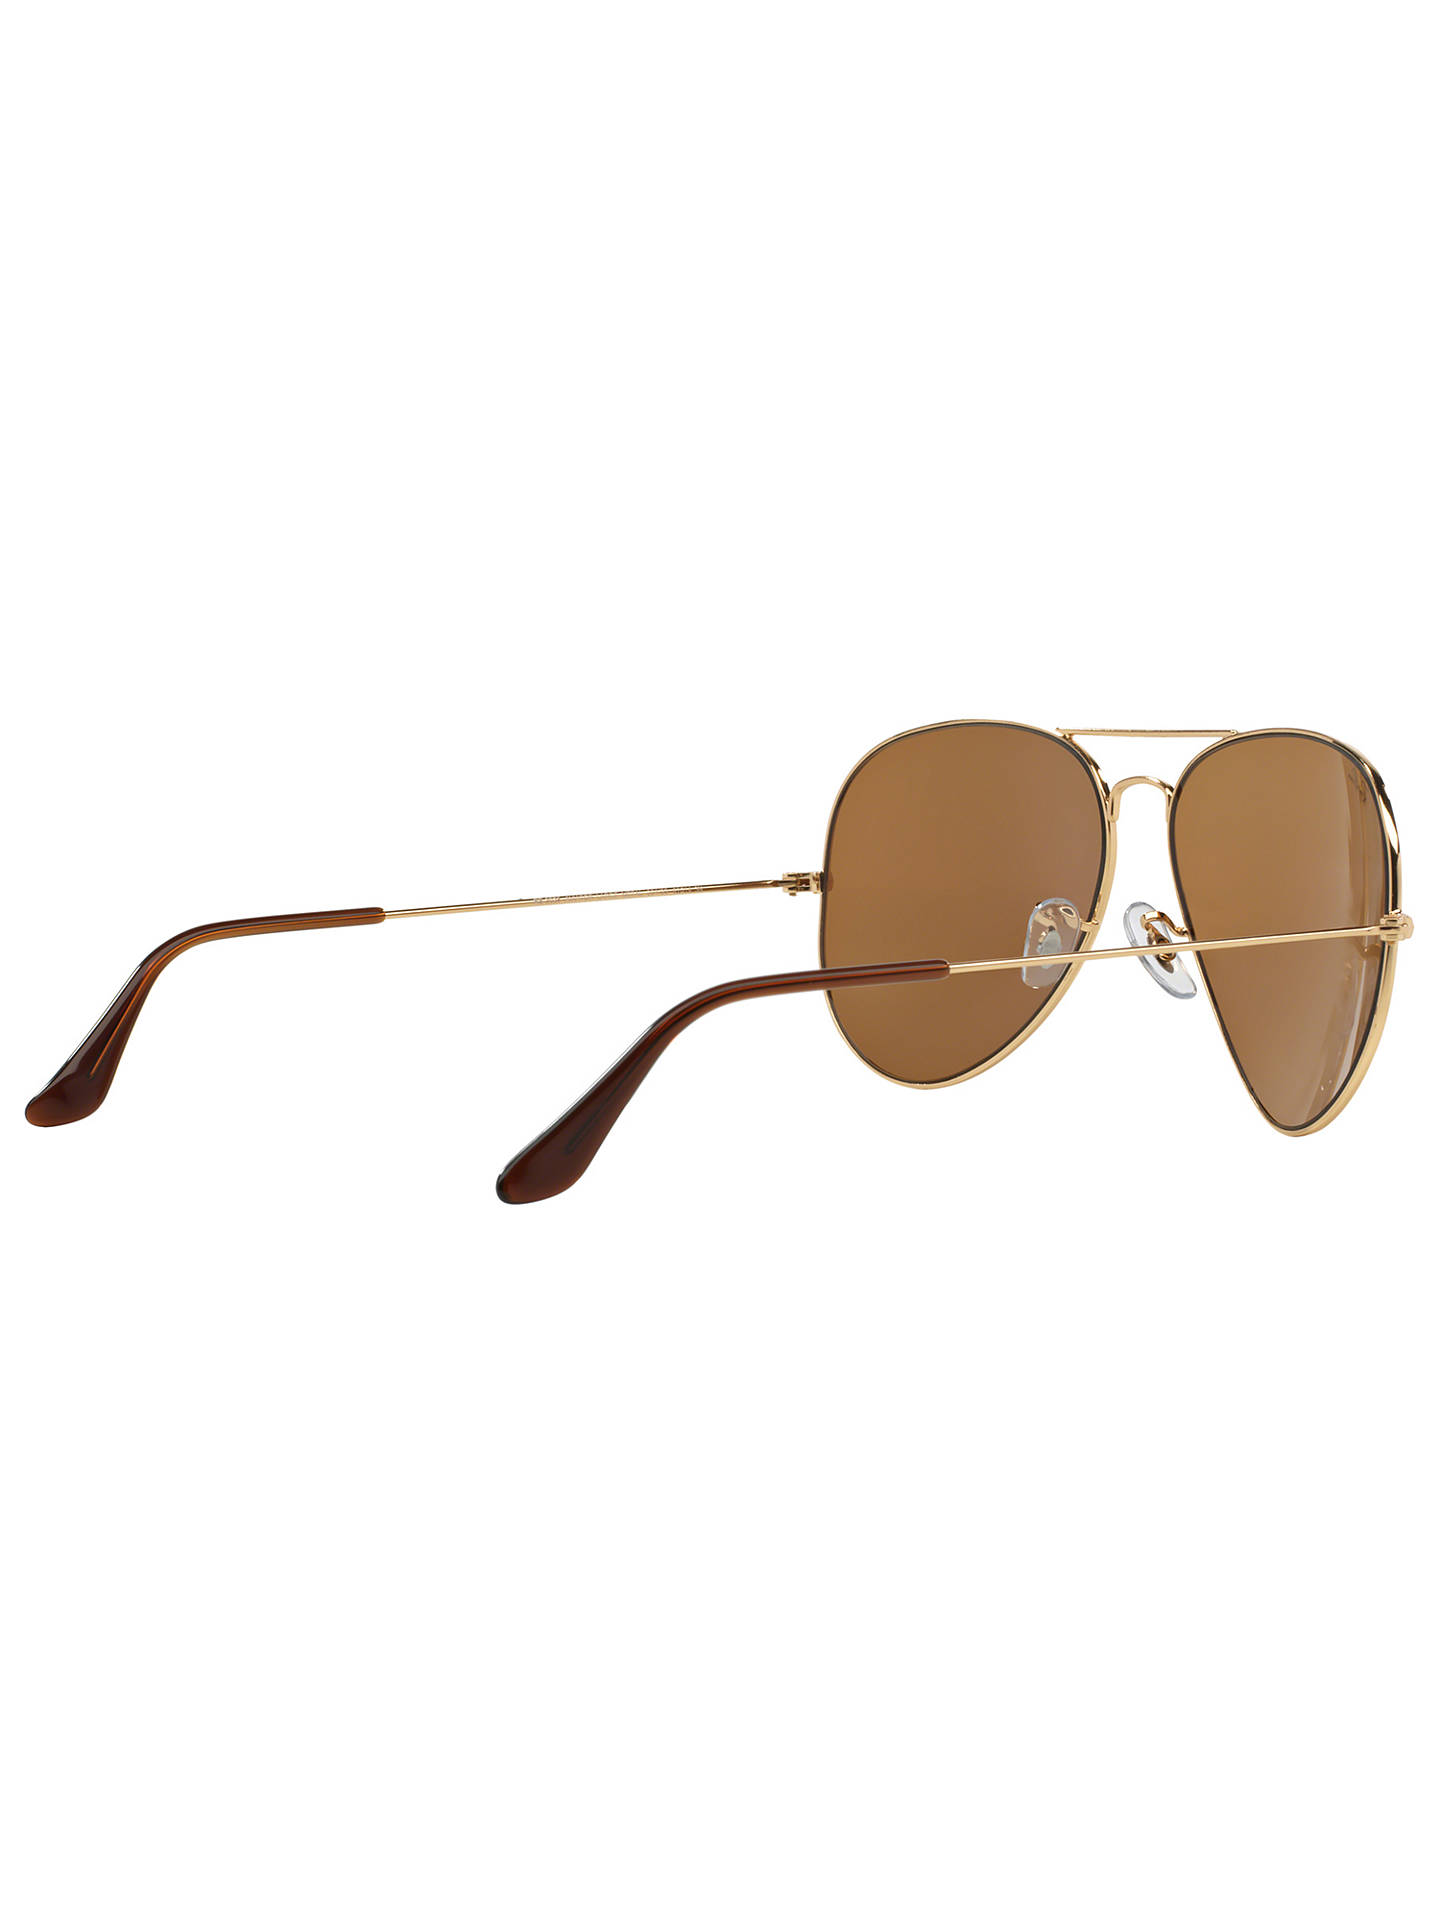 08317c14d4379 Ray-Ban RB3025 Iconic Aviator Sunglasses at John Lewis   Partners